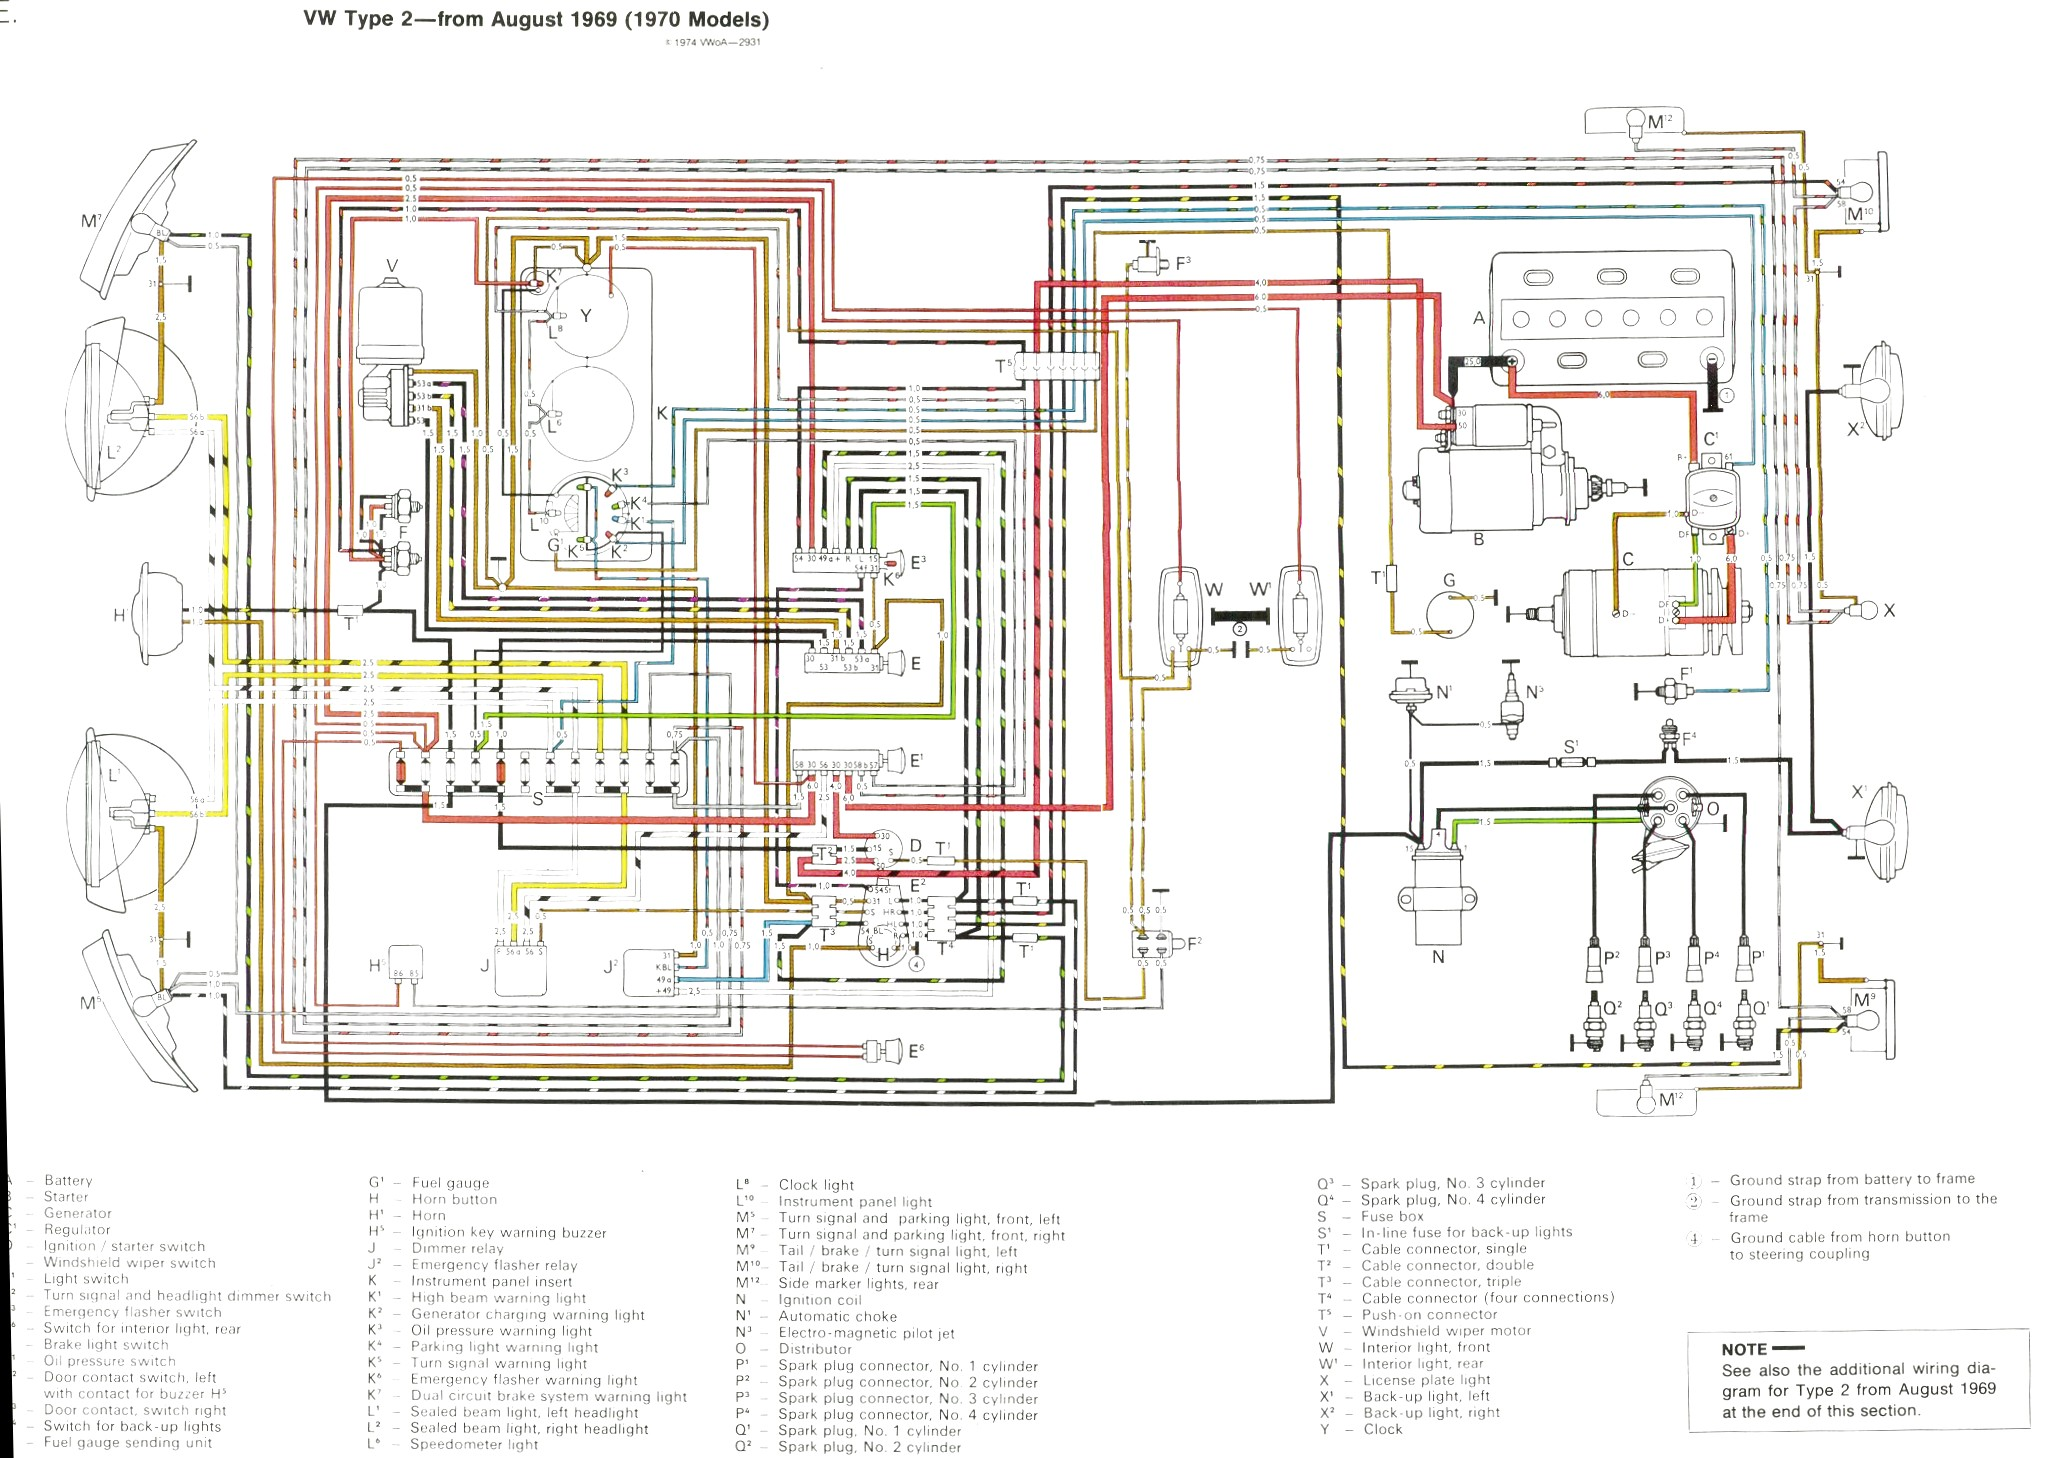 Vw Bus And Other Wiring Diagrams Dedicated Circuits For Electrical In Home Http Com